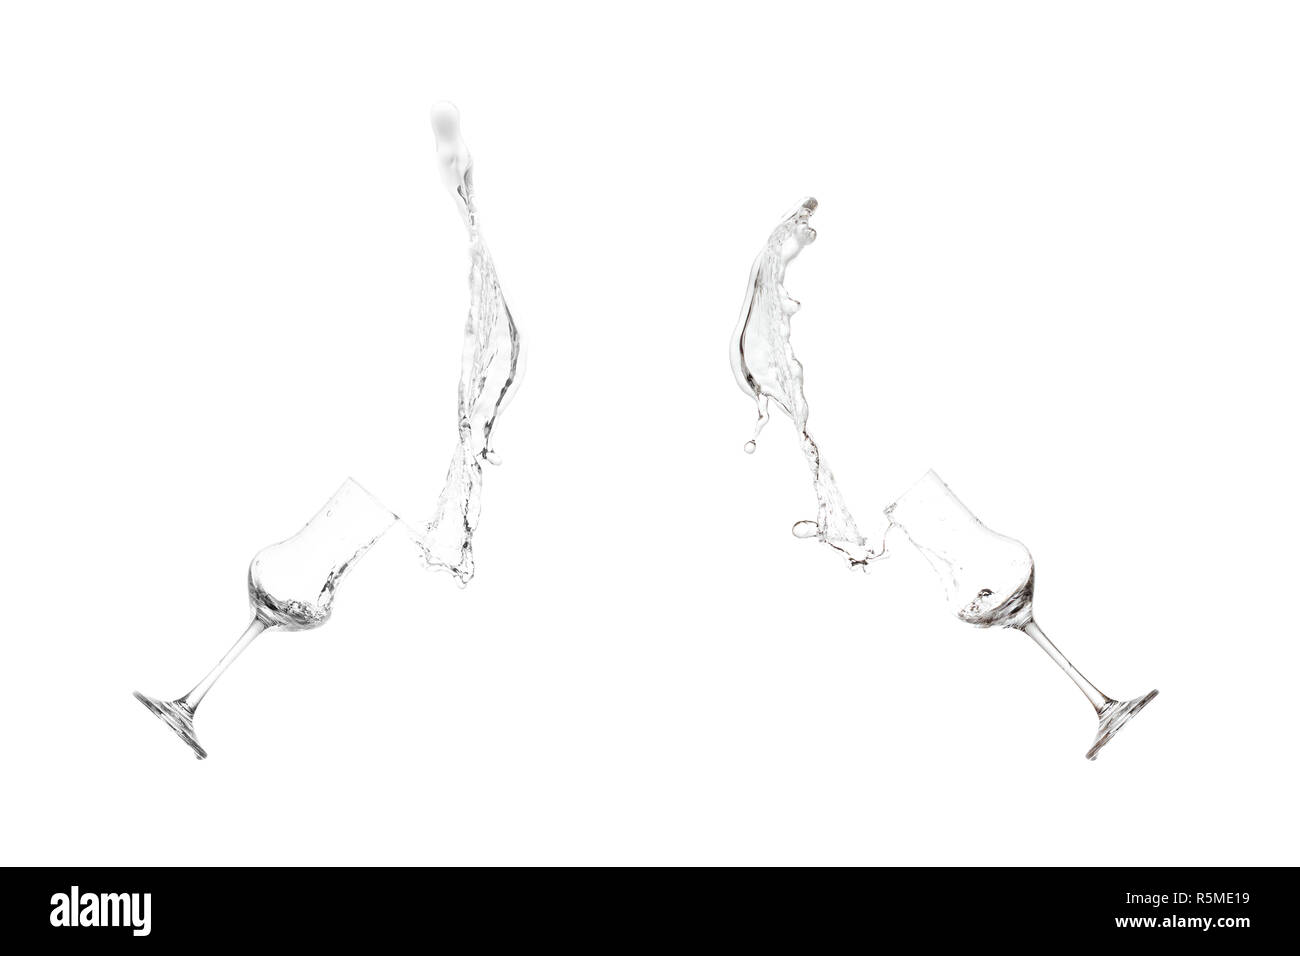 splash grappa slosh from a grappa glass - Stock Image